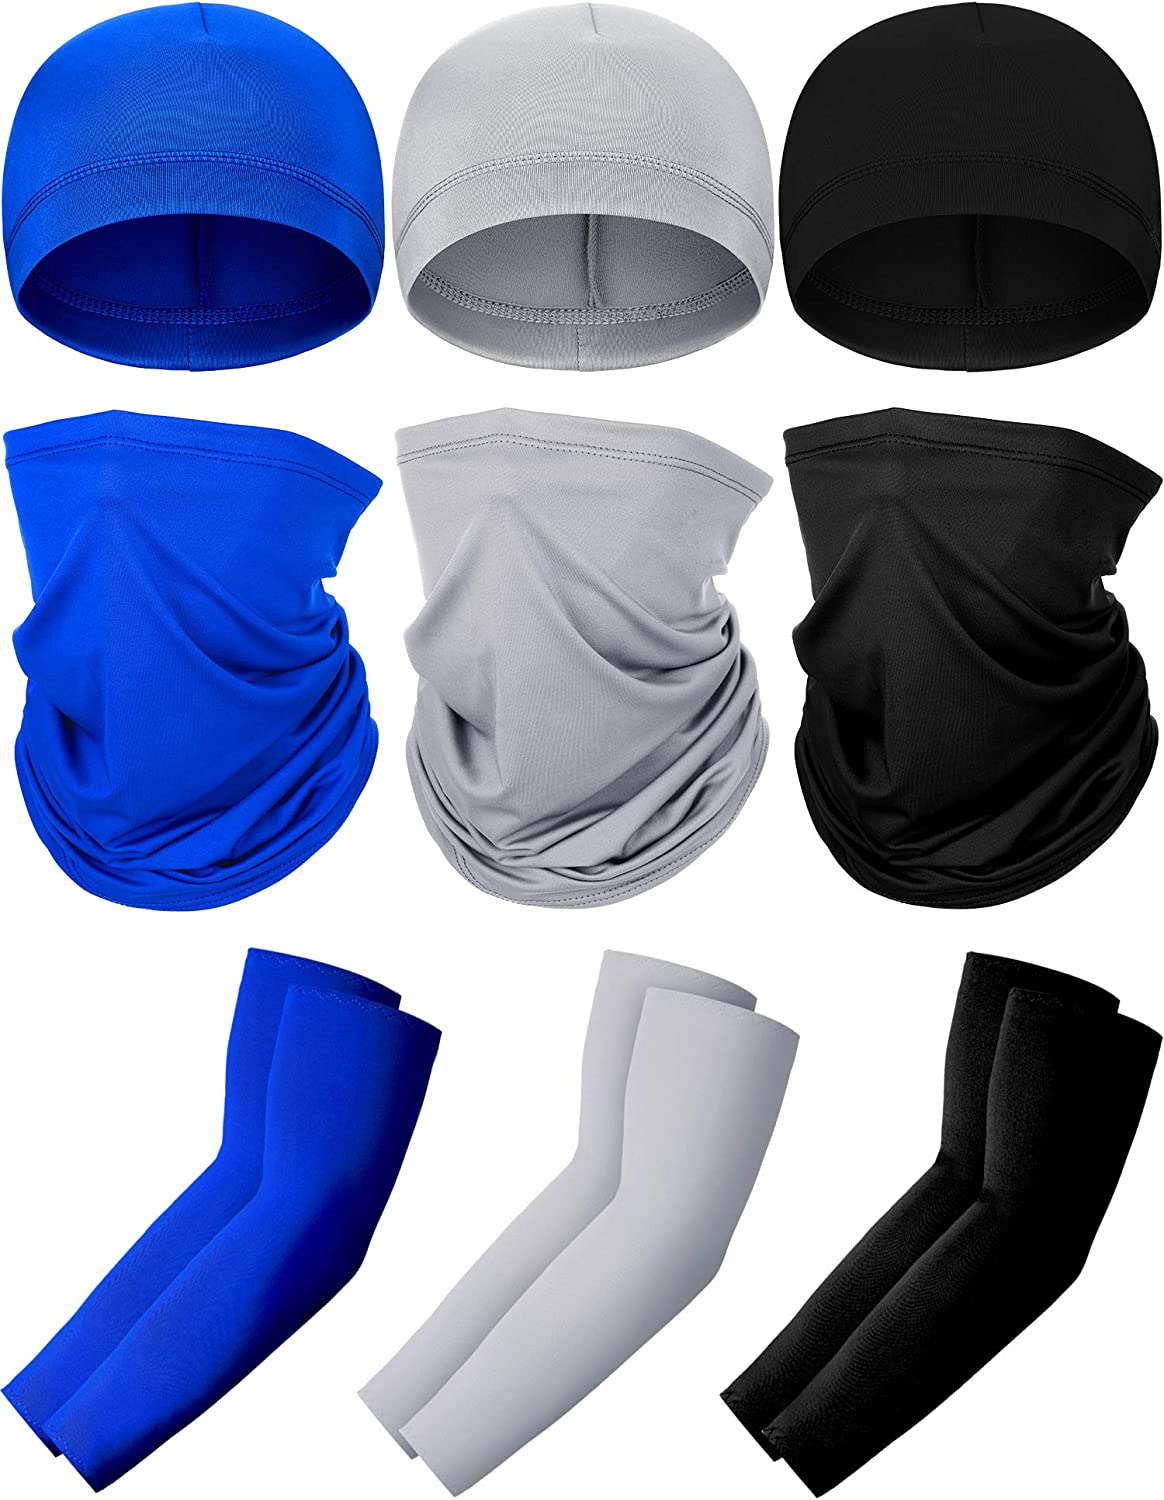 3 Set UV Protection Neck Gaiter Face Cover Cooling Arm Sleeve Skull Cap Helmet Liner for Women Men